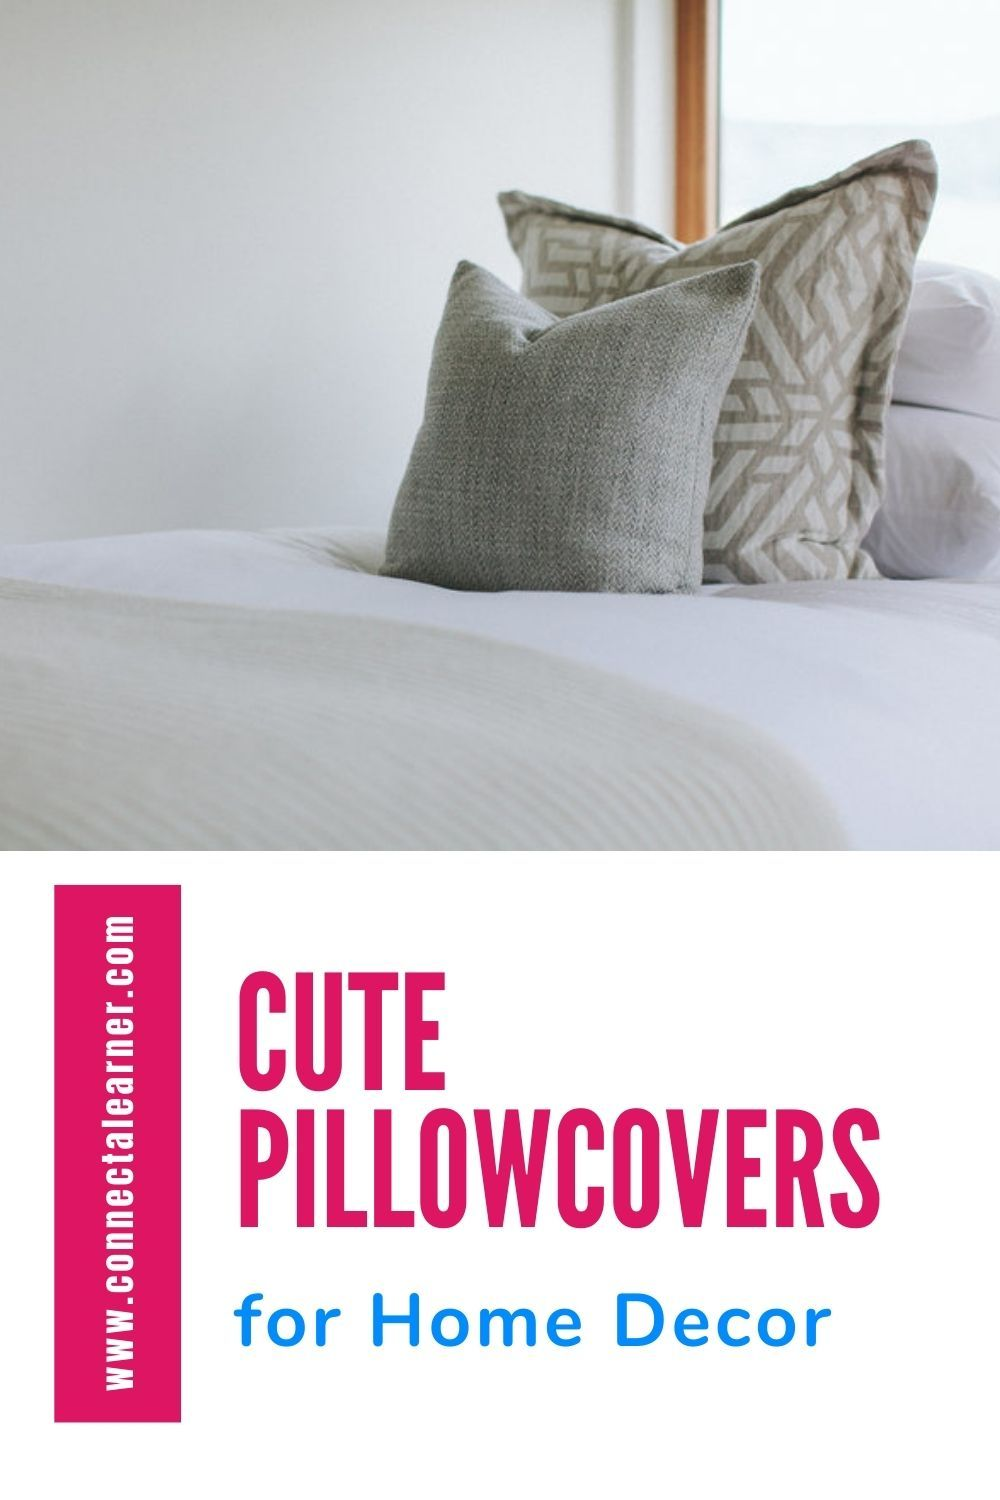 They are low-cost, super versatile, and can be changed out depending on the occasion and your mood. #Roomdecor #housedecoration #DecorationIdeas room_decor_ideas #Pillowcovers